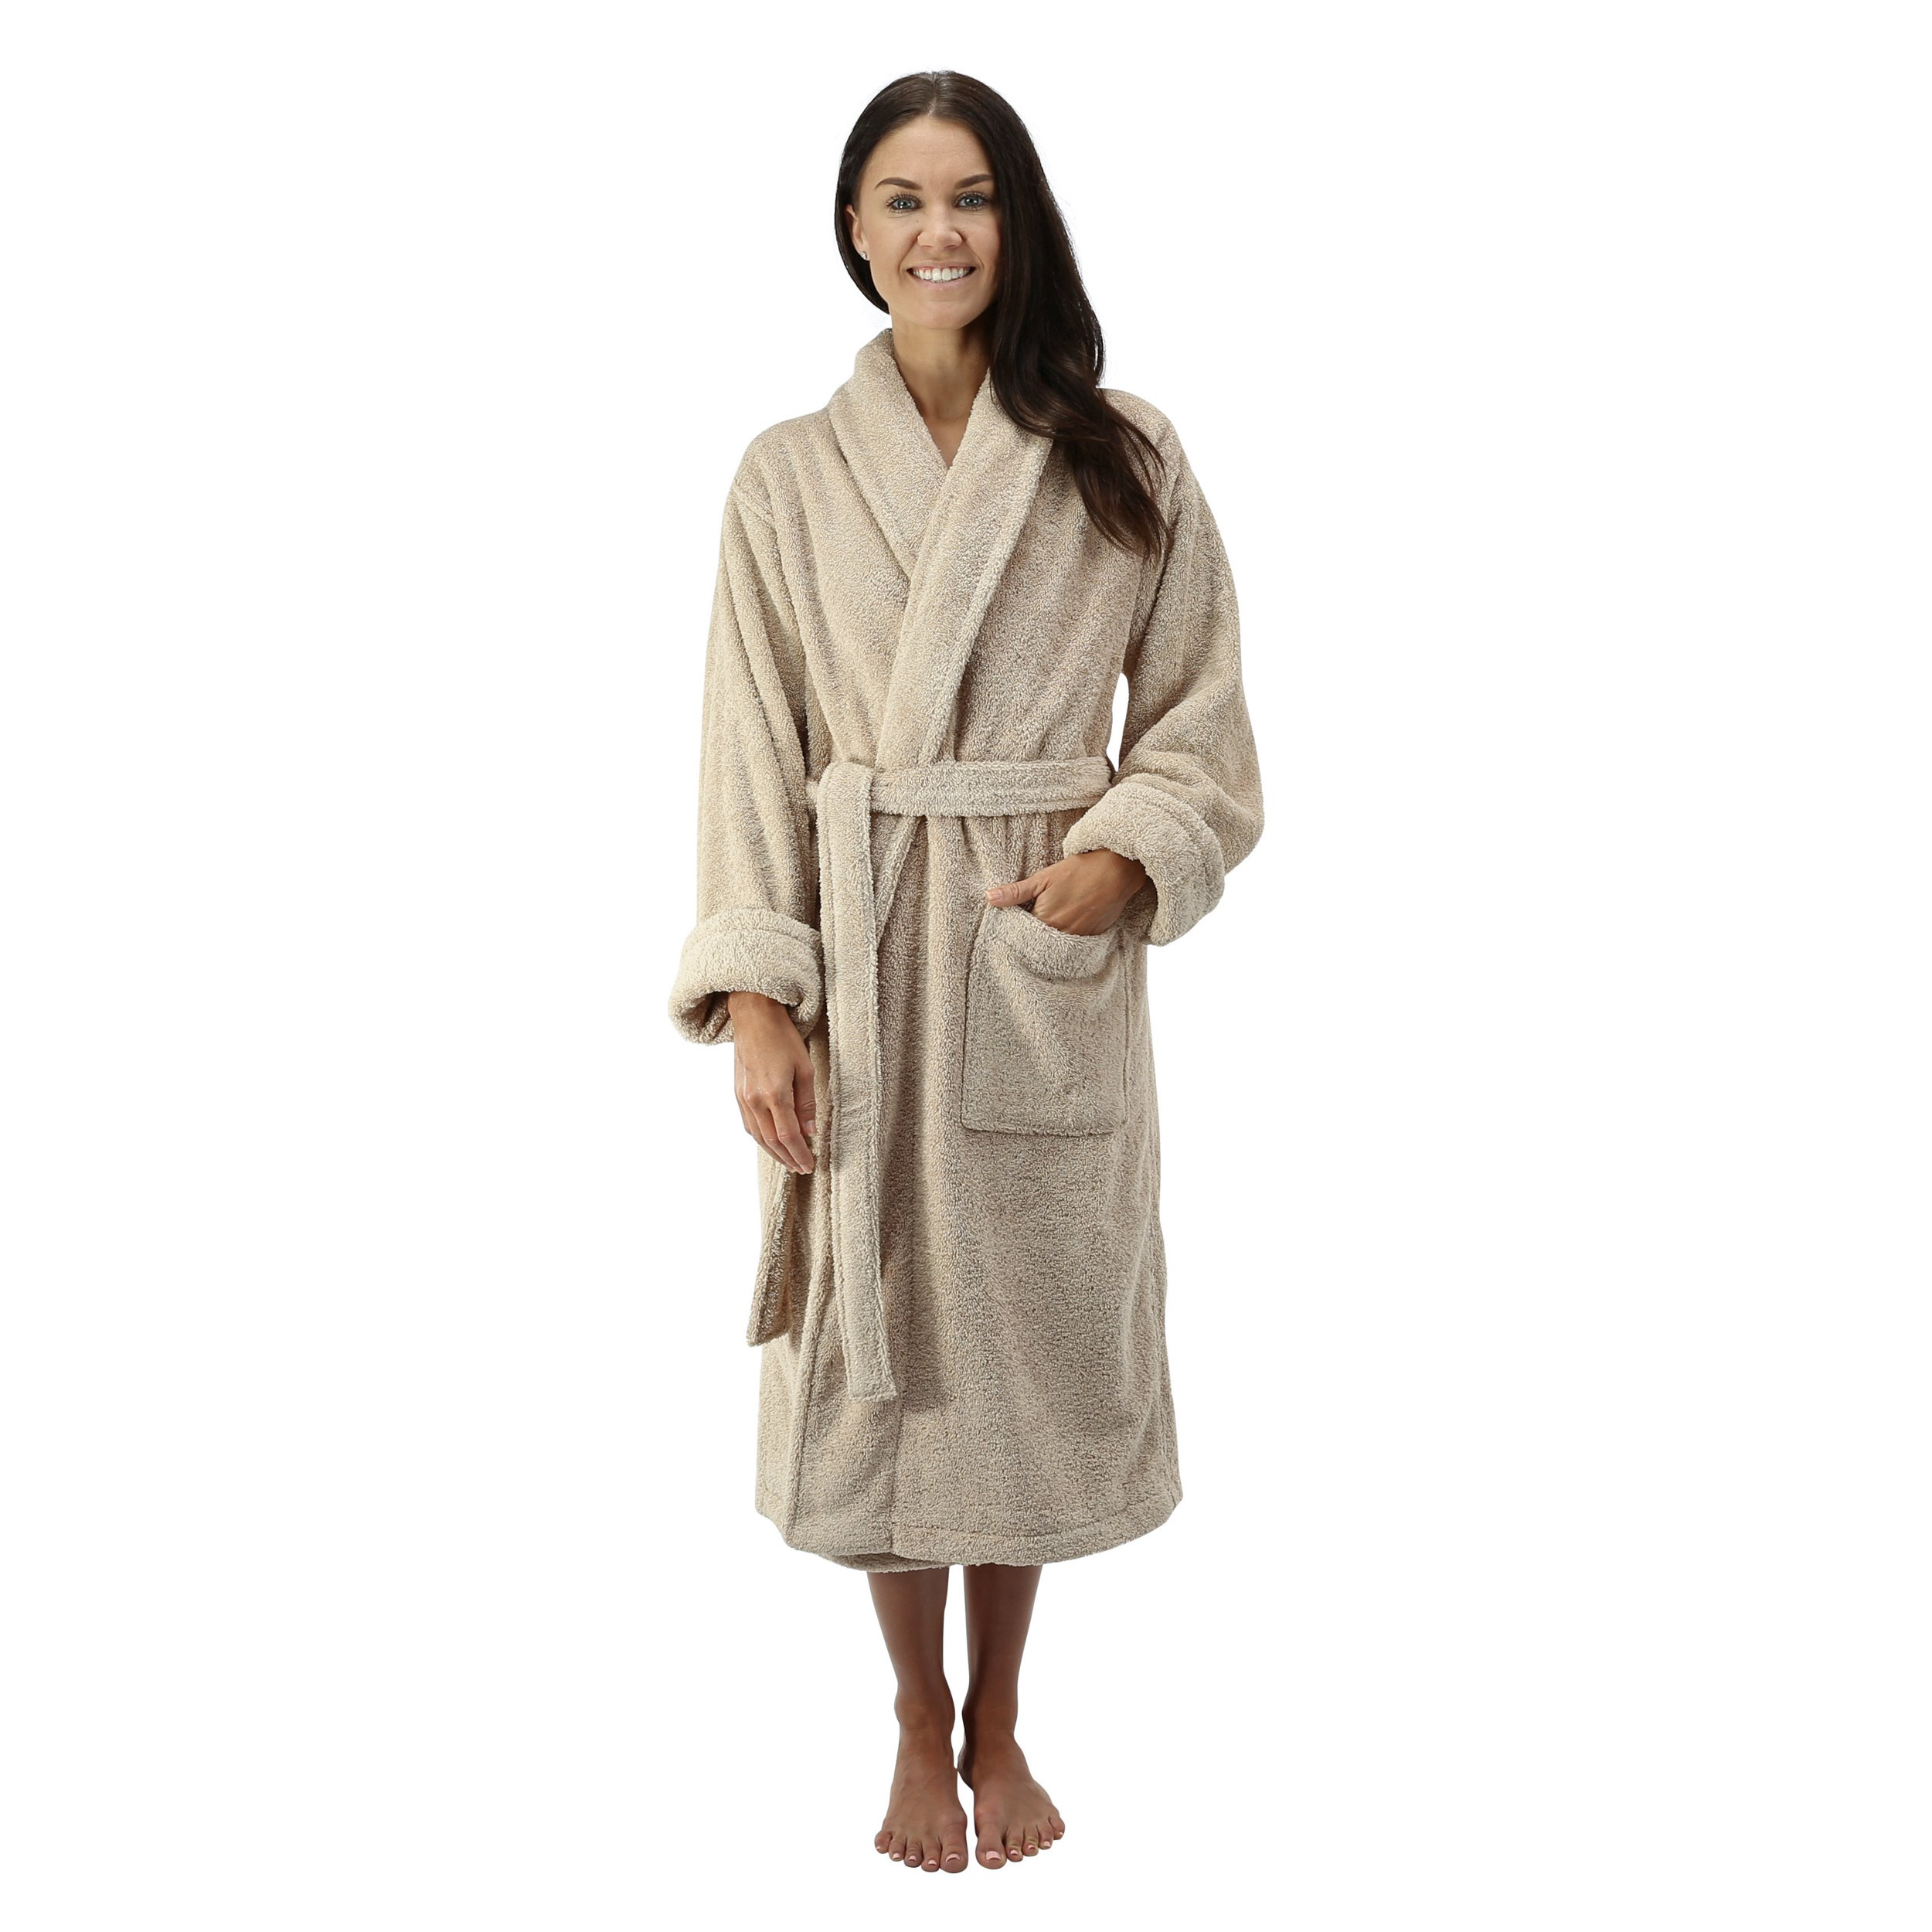 Comfy Robes Personalized Women's Deluxe 20 Oz. Turkish Terry Bathrobe, L/XL (OSFM) Beige by Comfy Robes